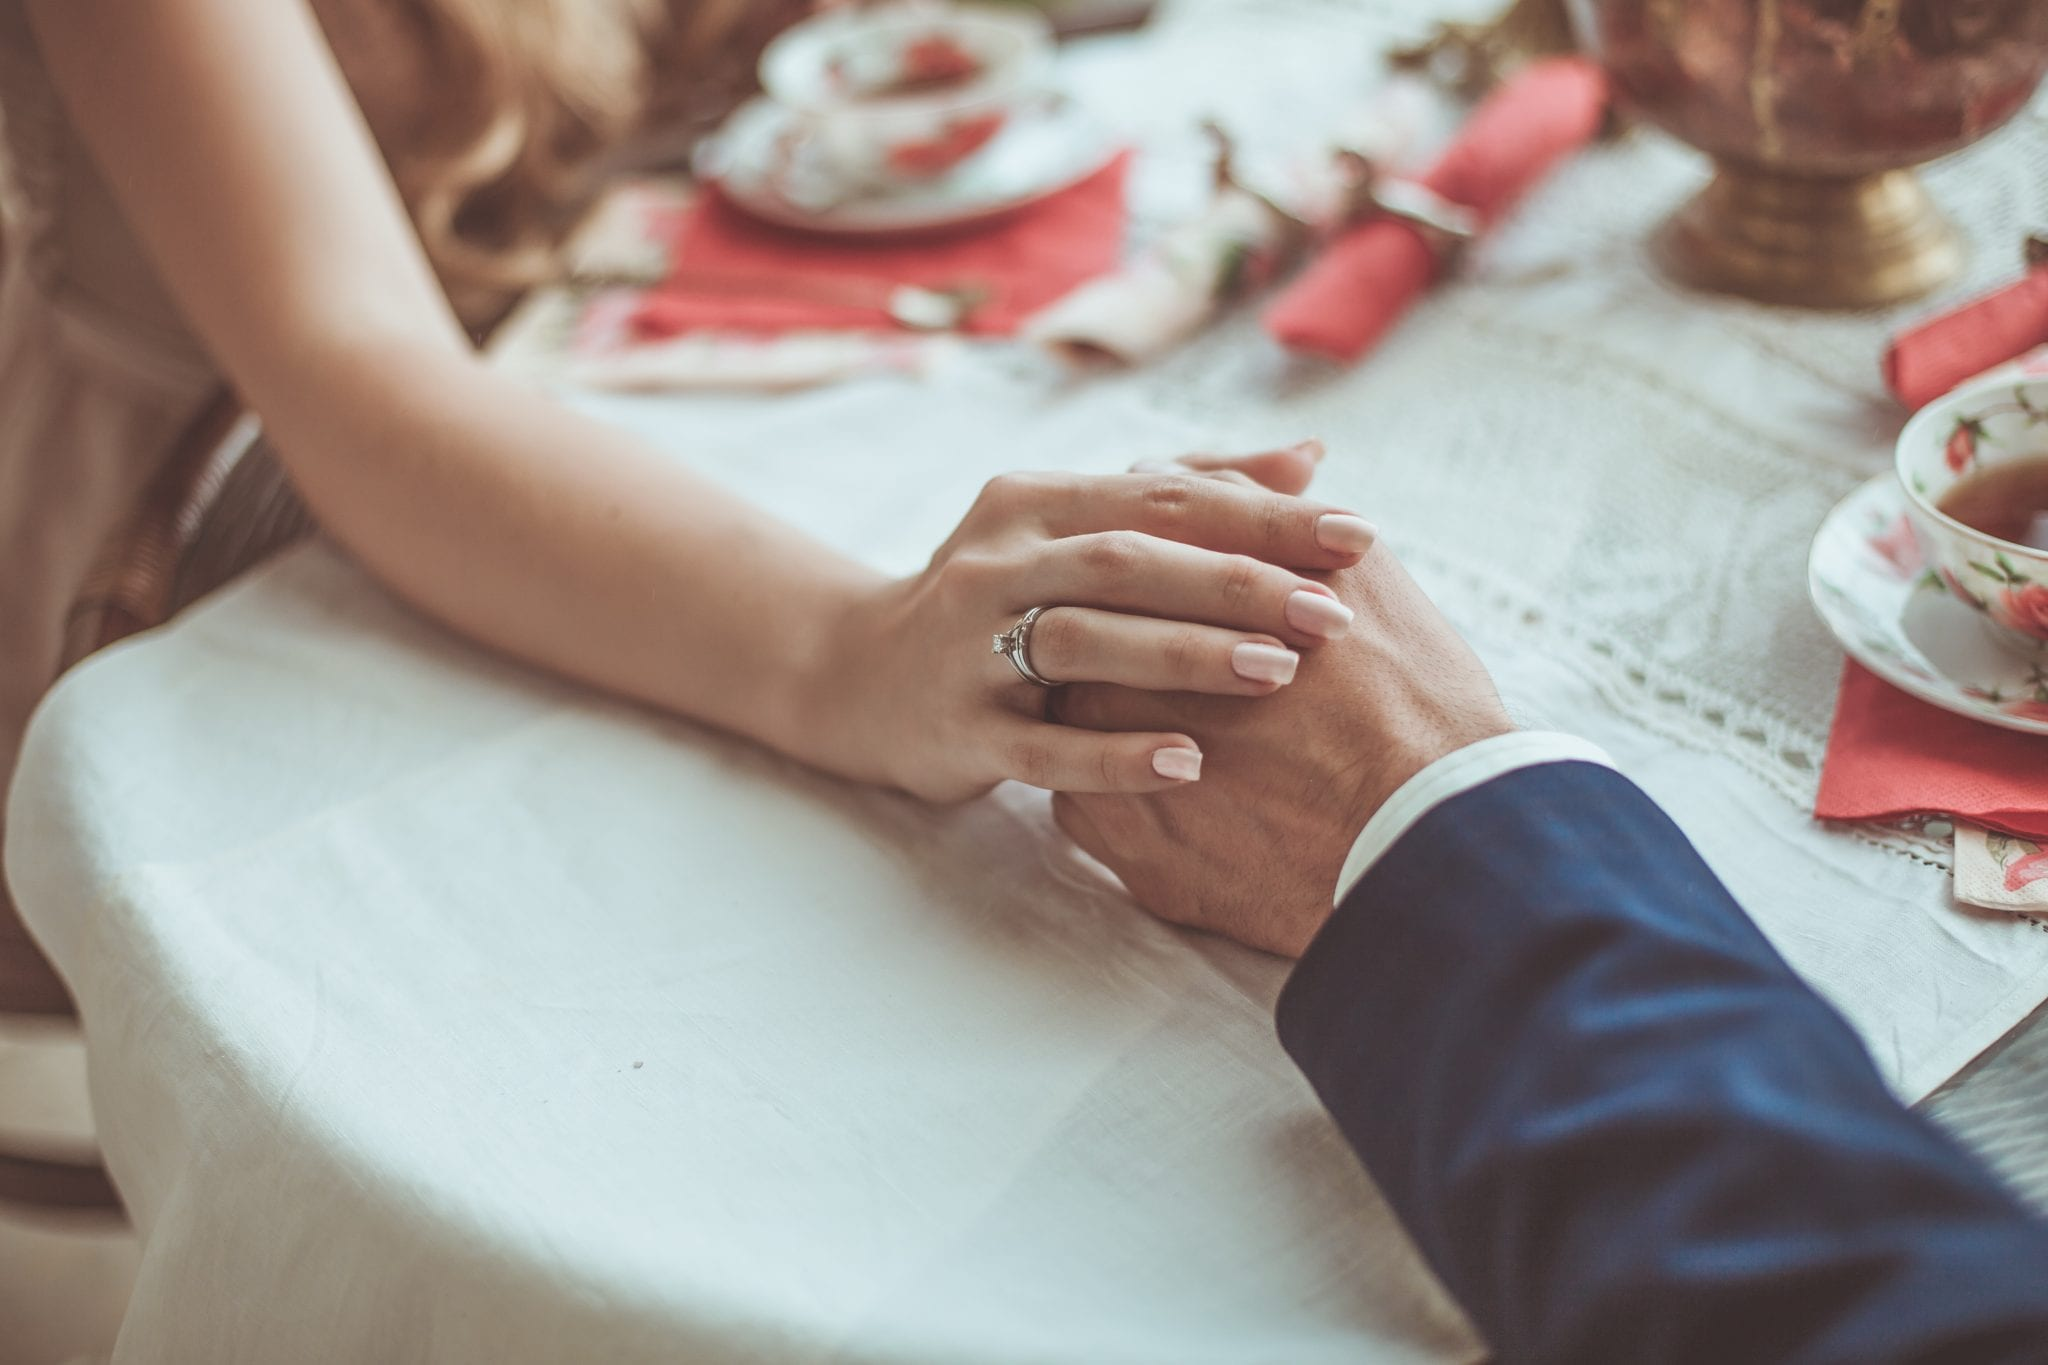 Winners and Losers in the Marriage Marketplace